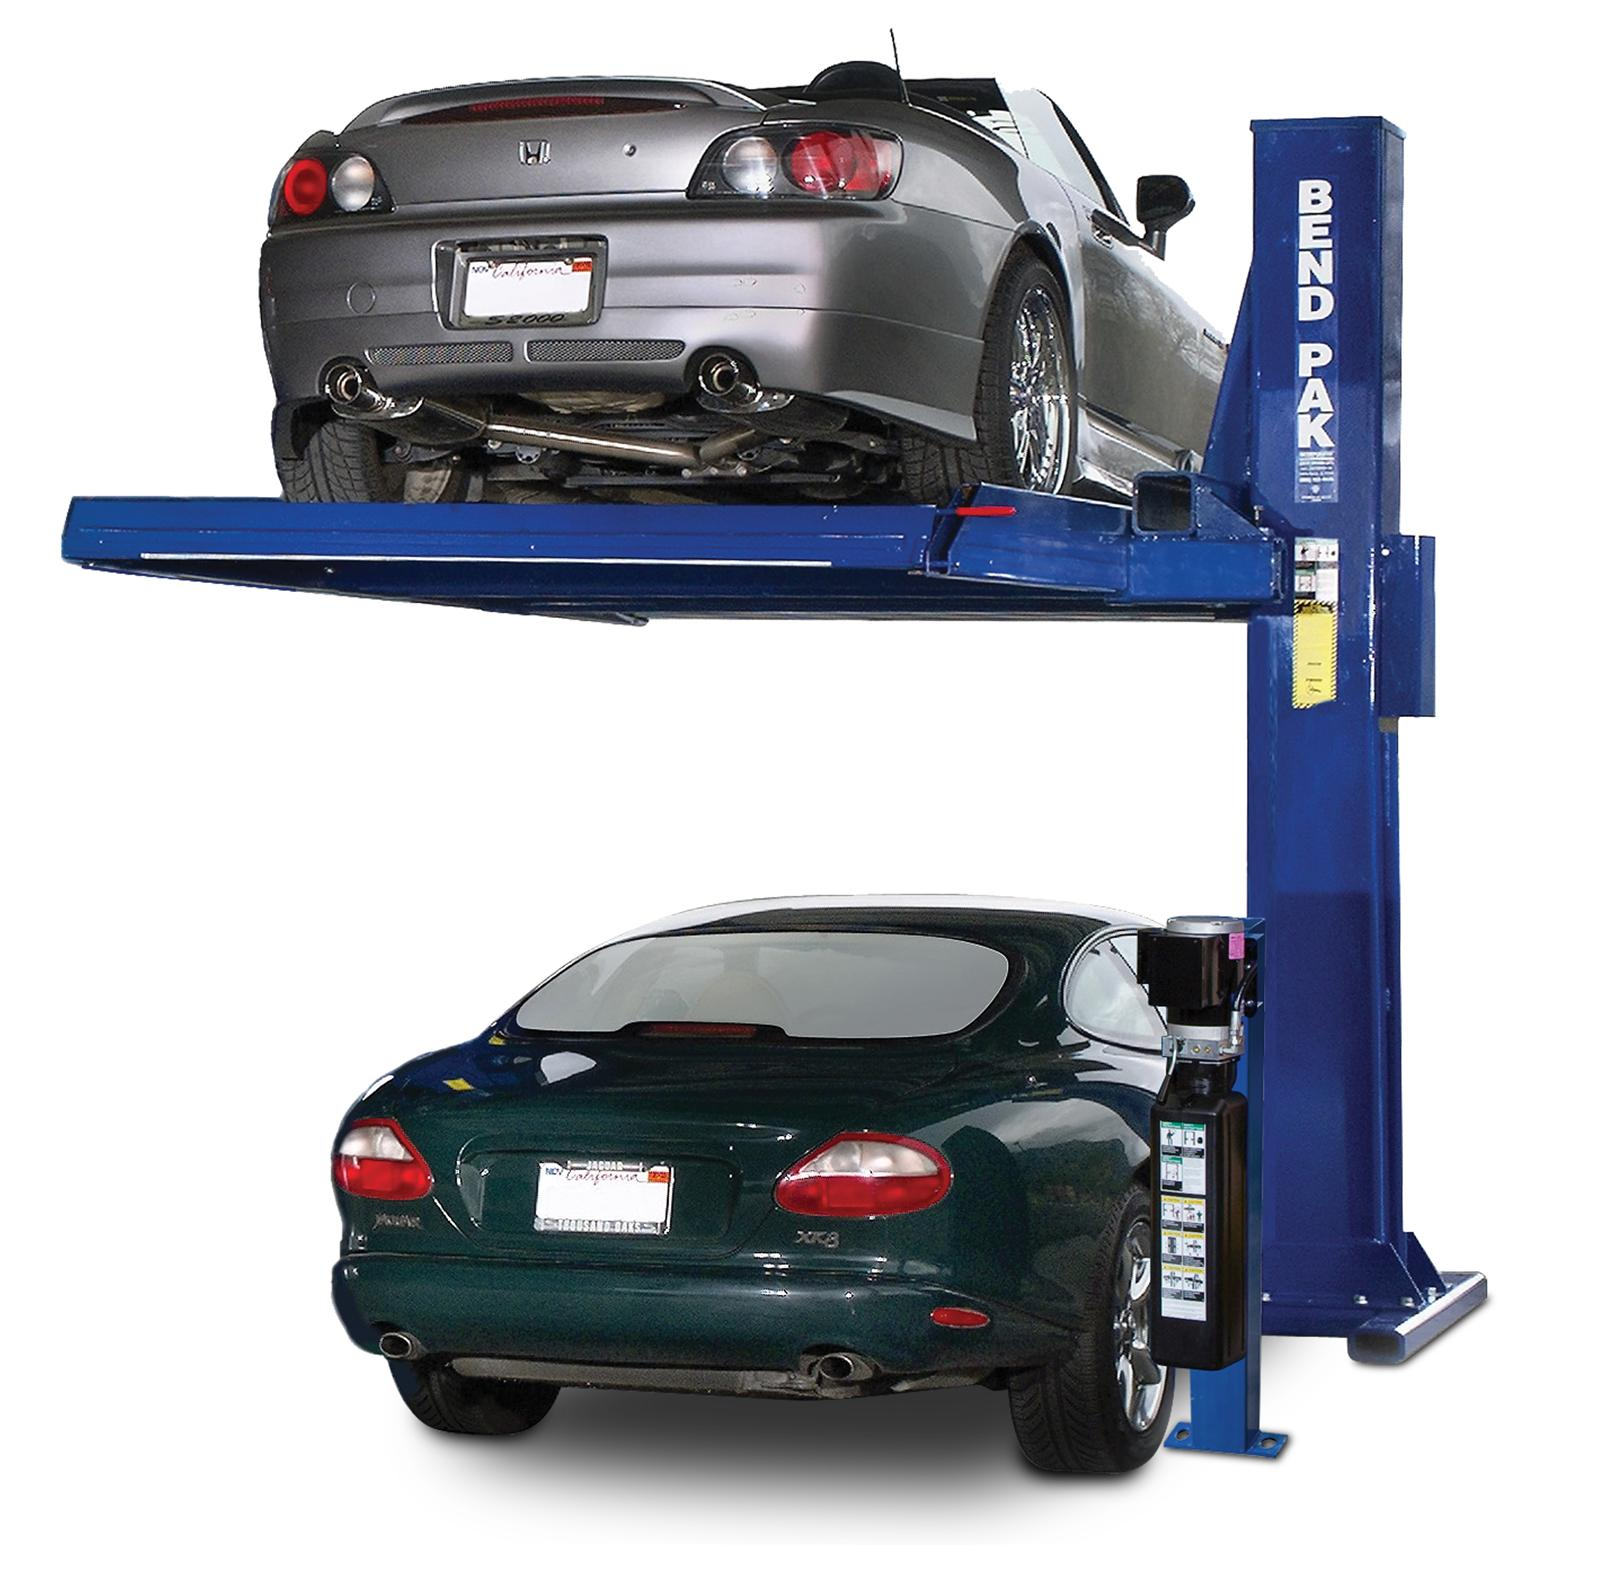 Bendpak pl 6000 single post car stacker parking deck lifts for Garage auto discount montpellier